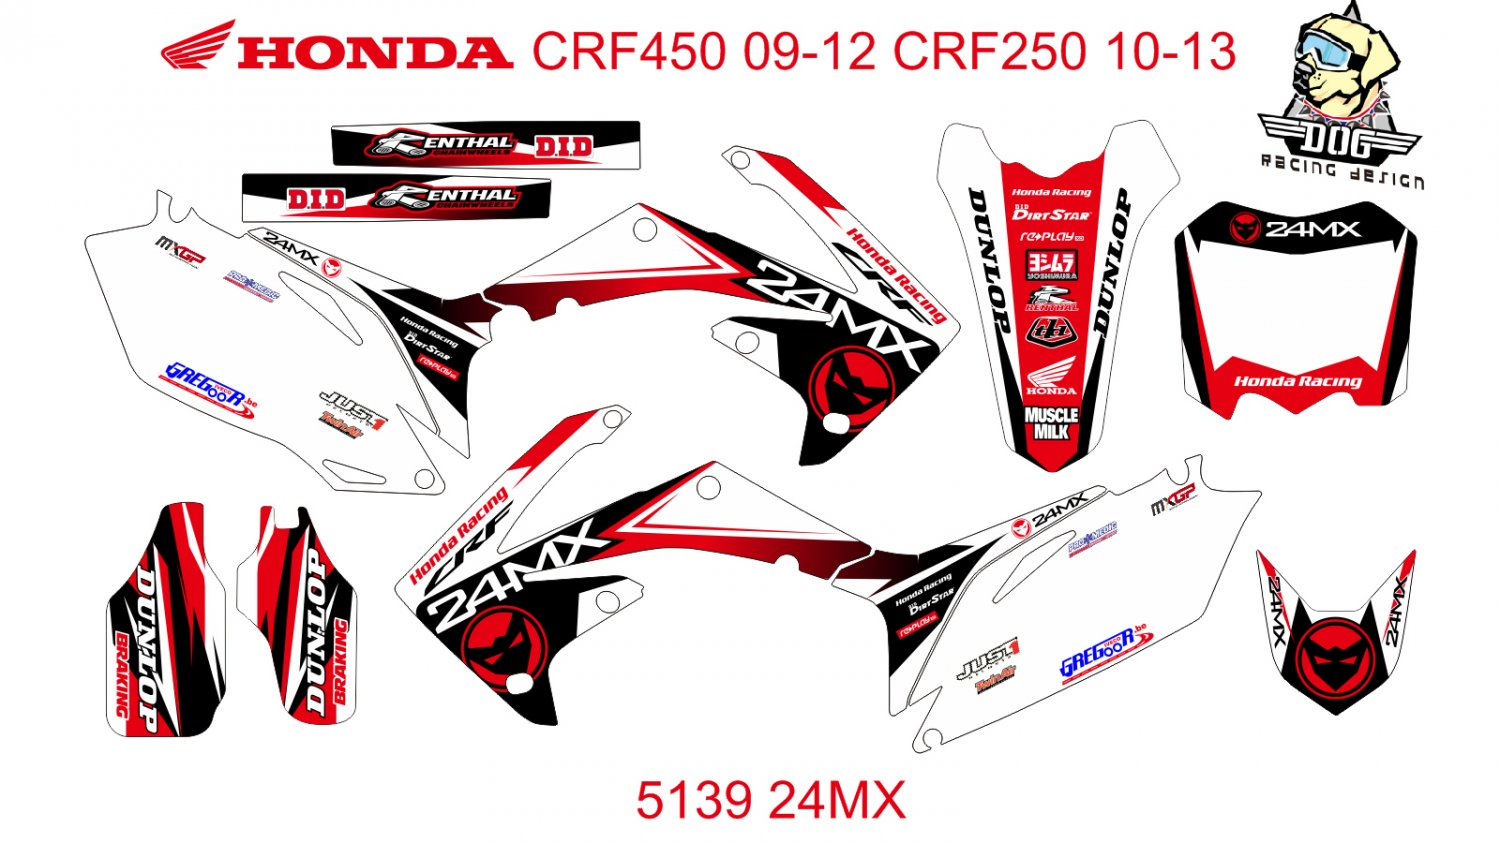 HONDA CRF 250 2010-2013 CRF 450 2009-2012 GRAPHIC DECAL KIT CODE.5139